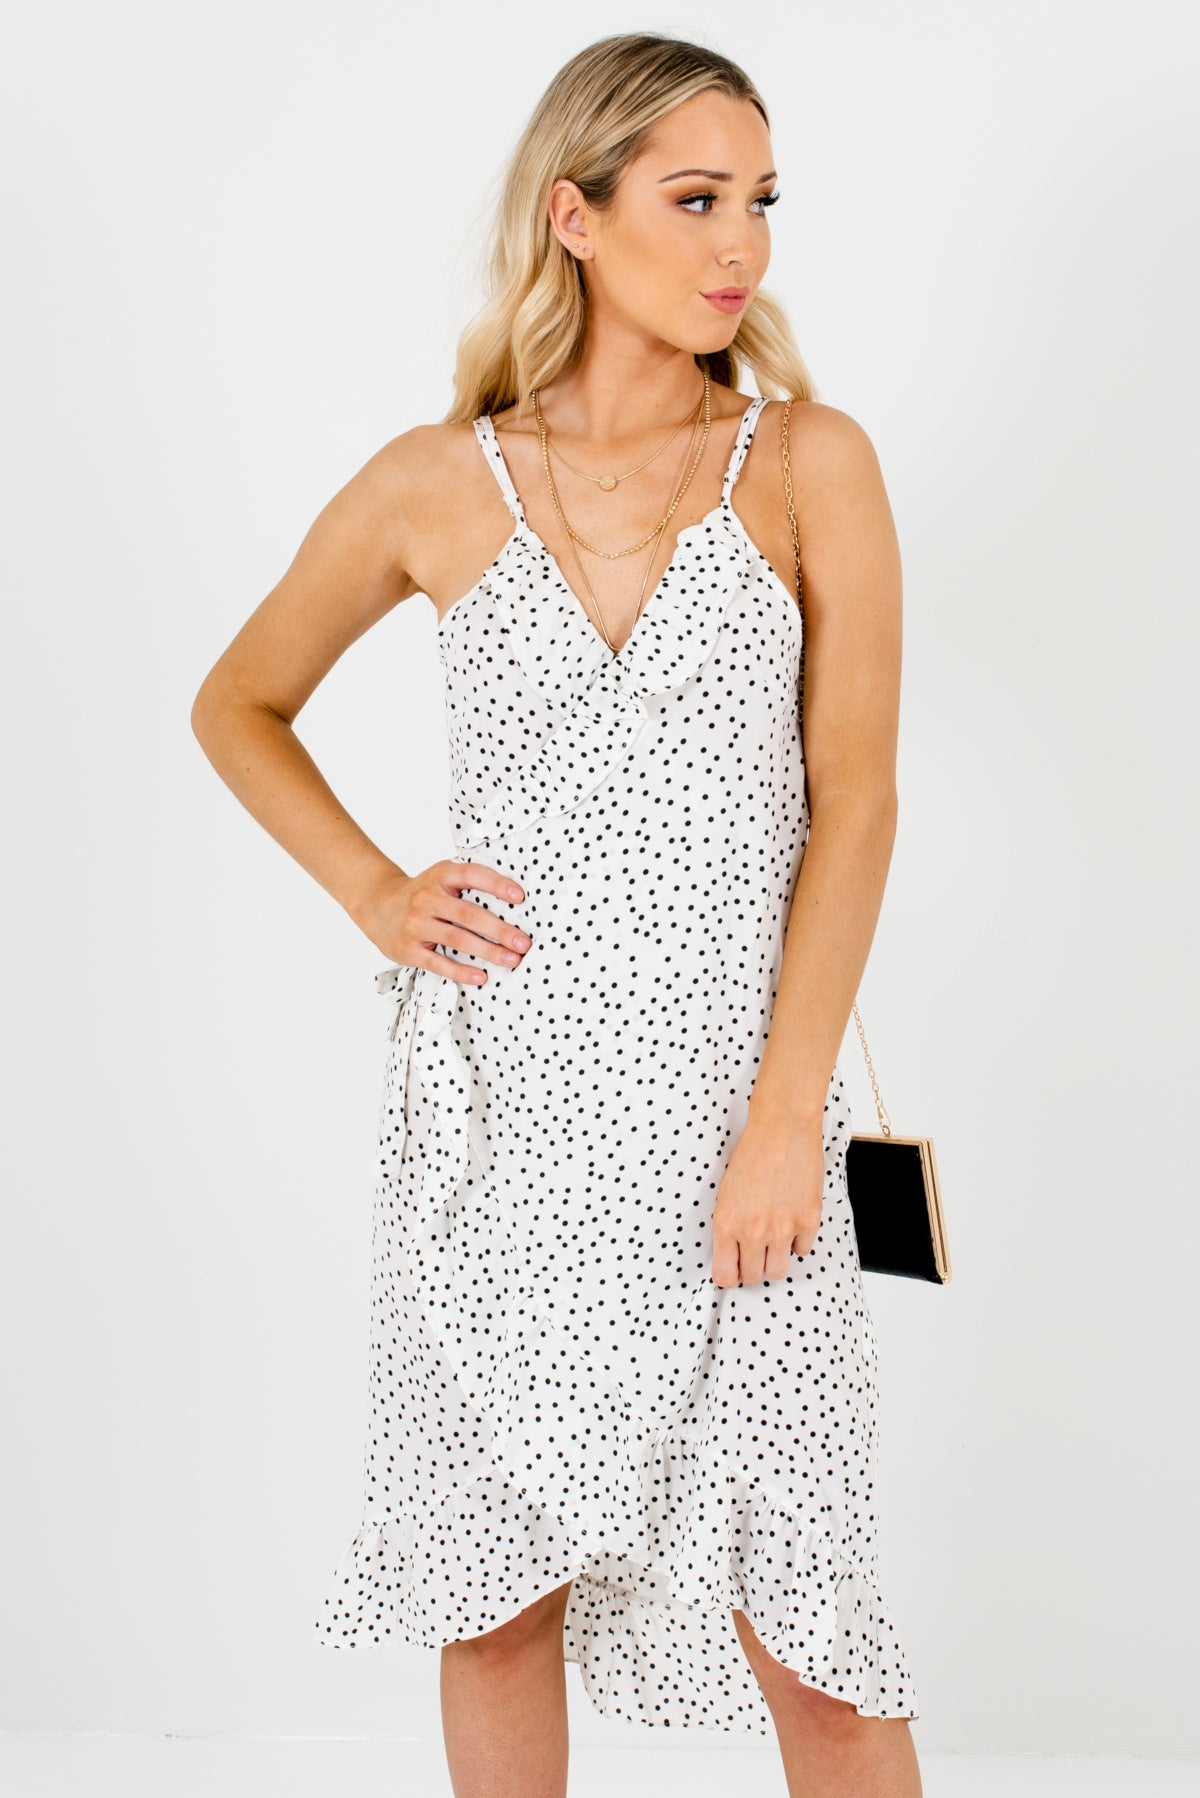 White and Black Polka Dot Patterned Boutique Knee-Length Dresses for Women